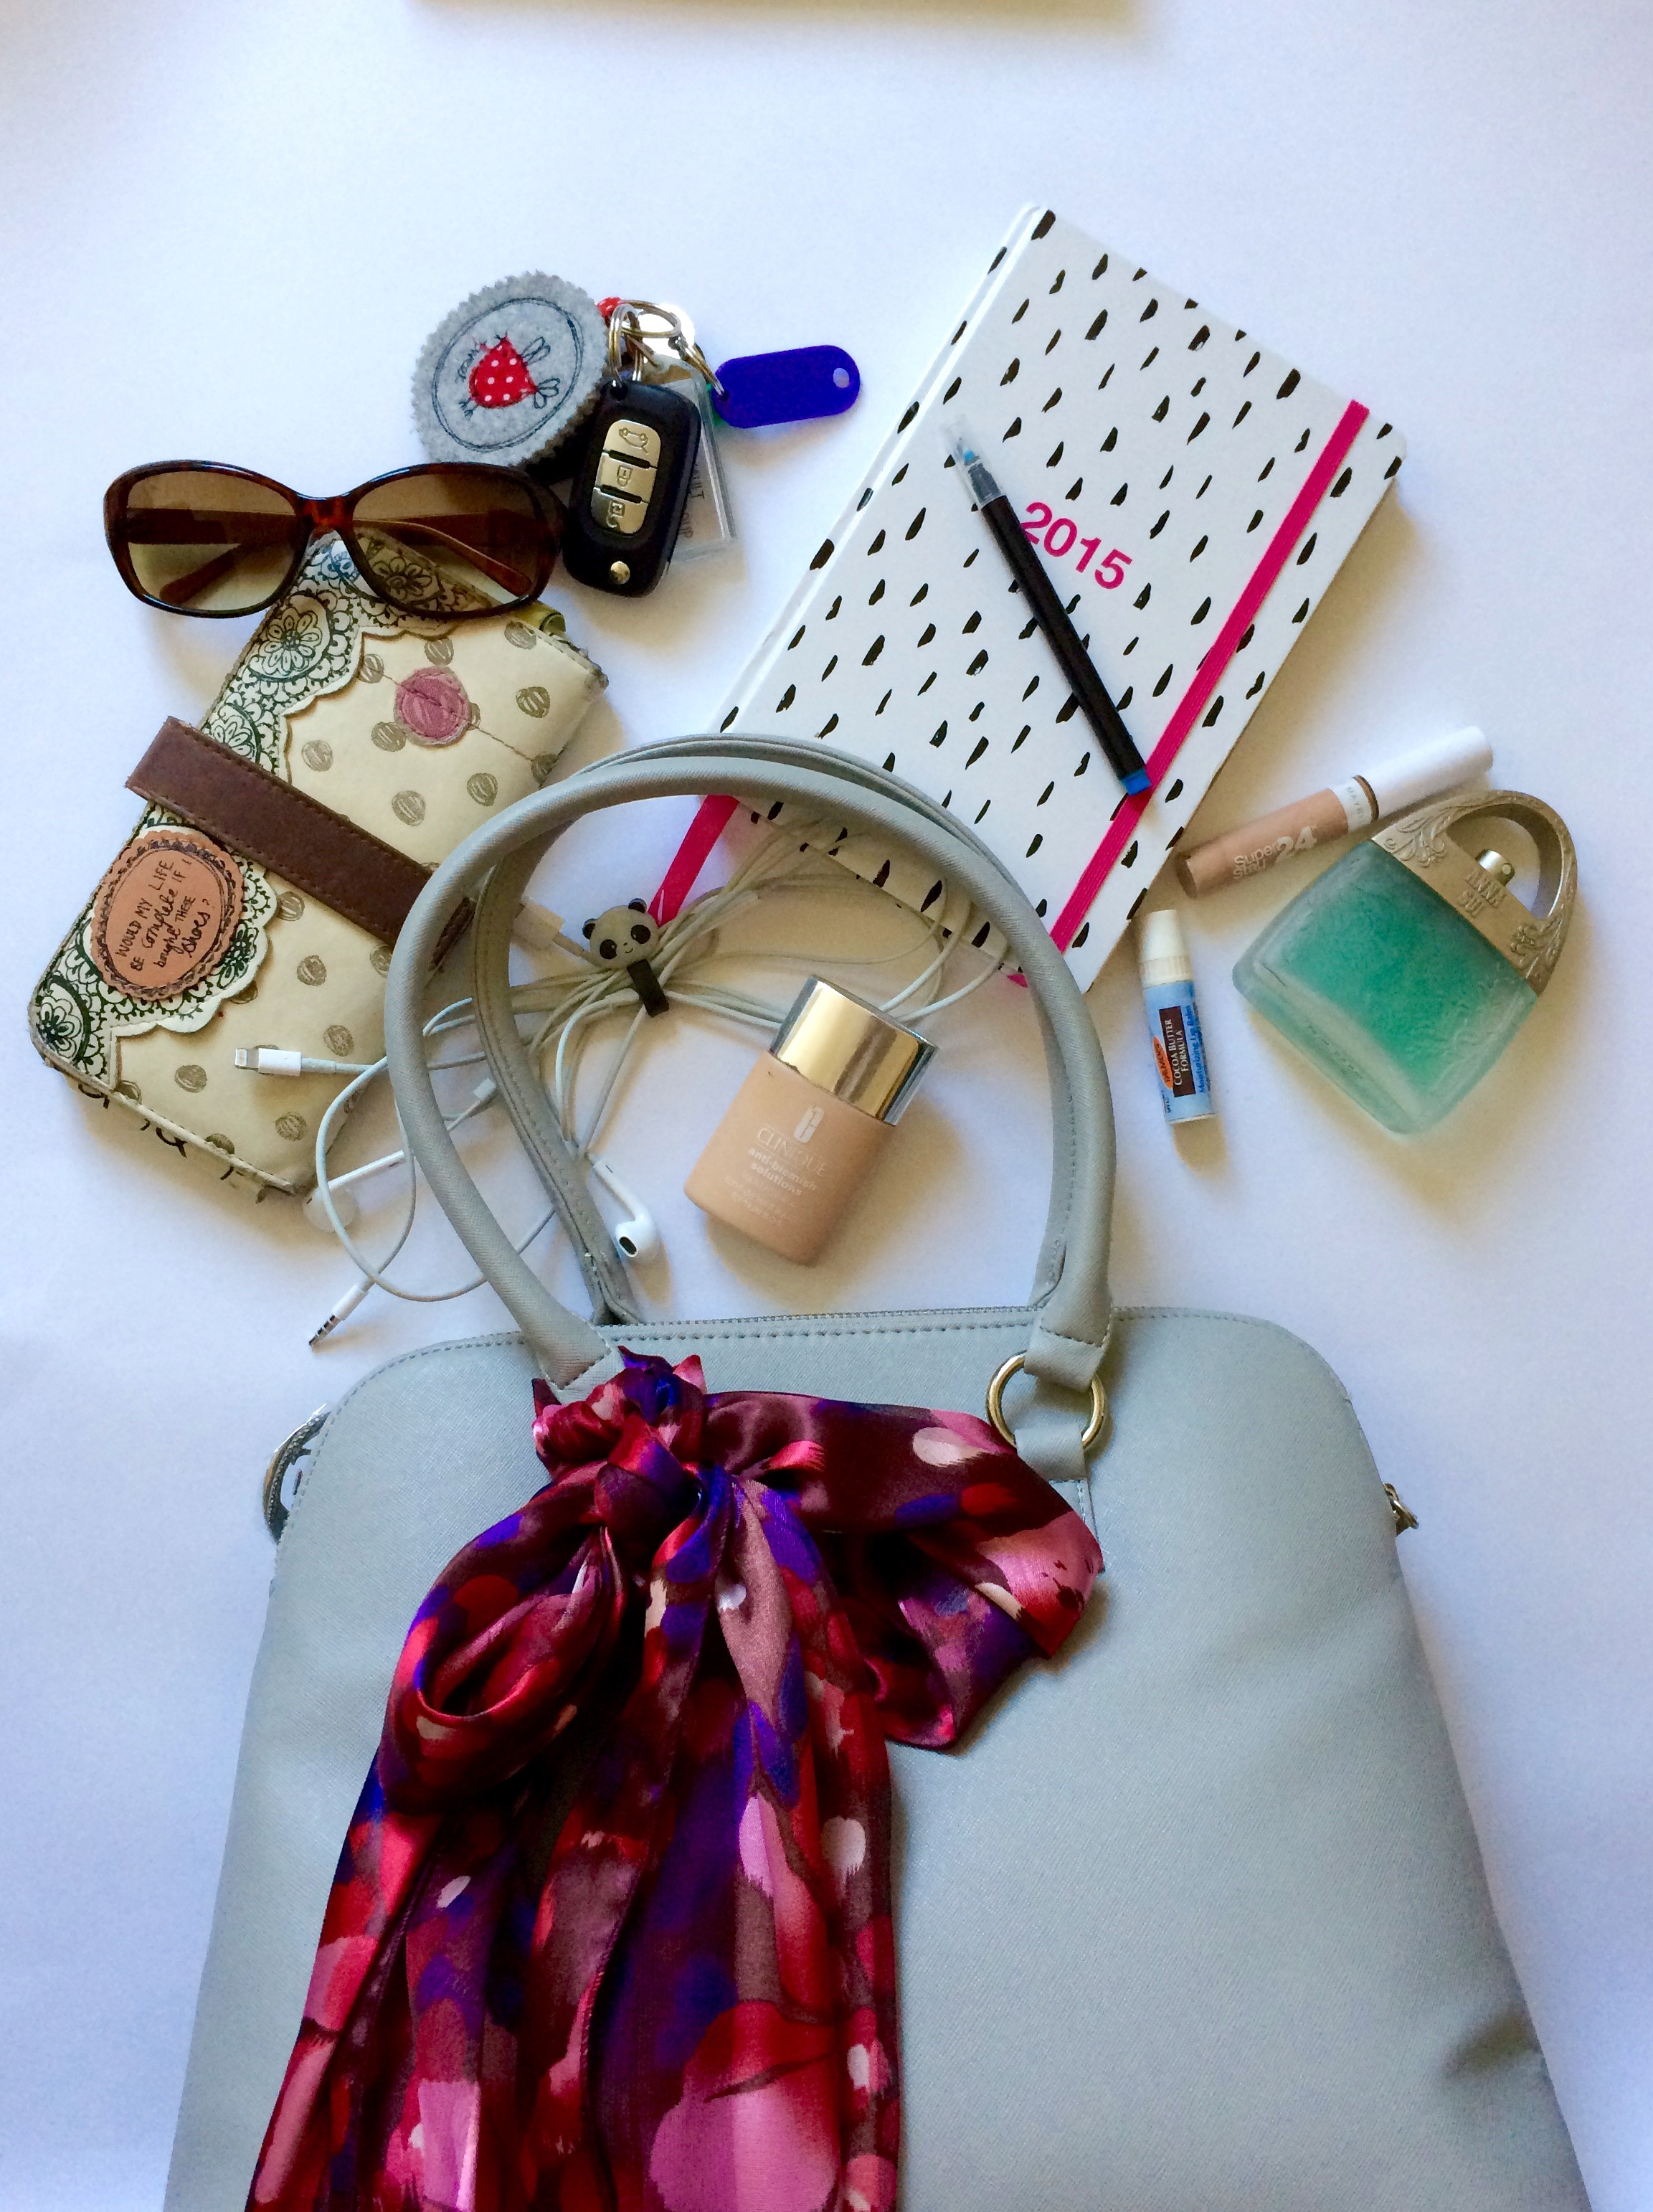 #BEDM Day 22: What's in my bag?